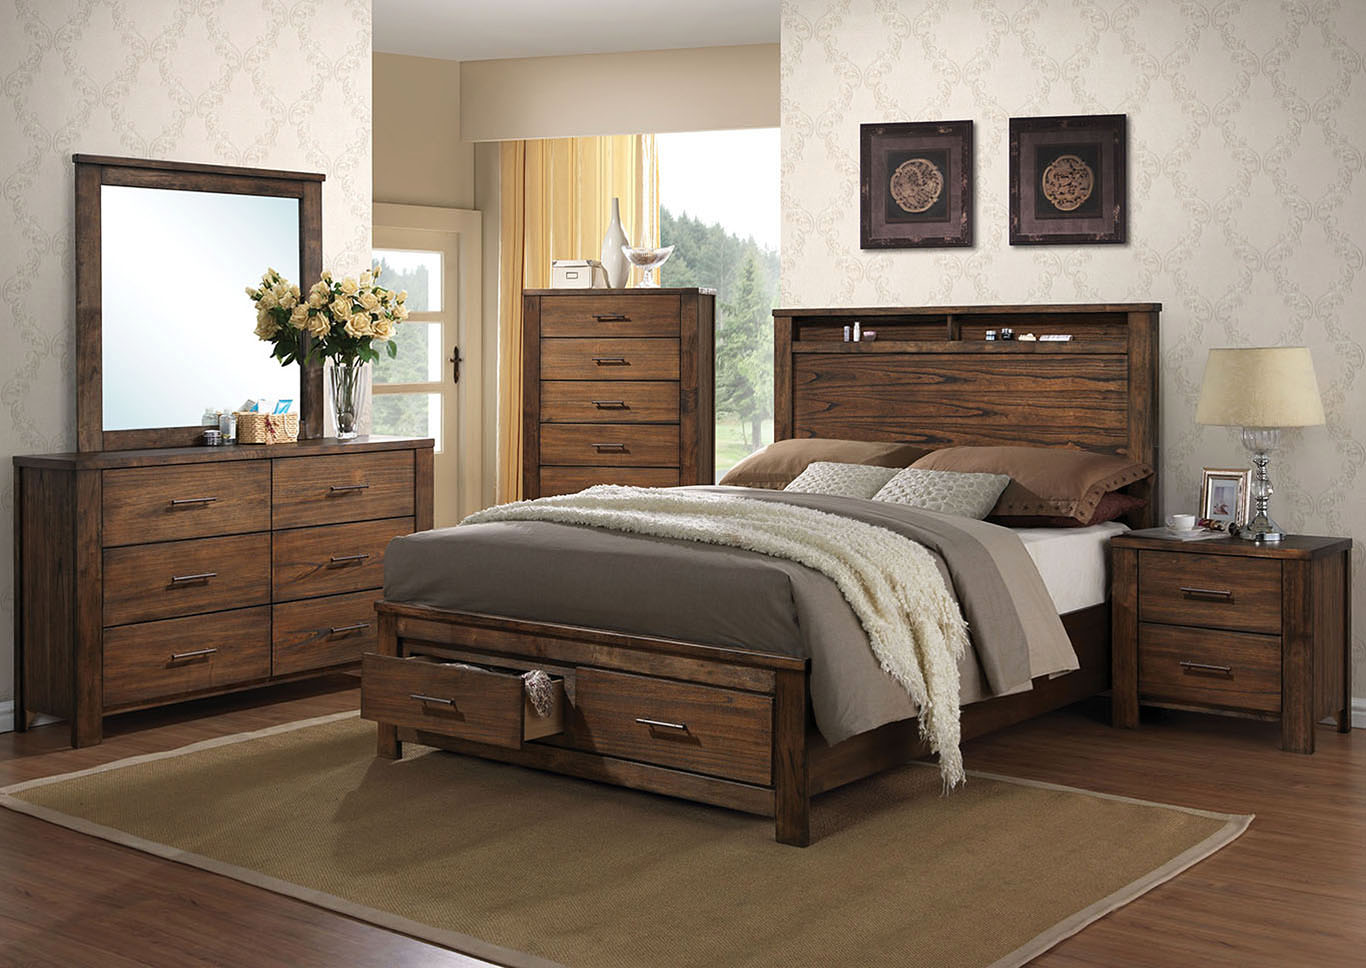 Merrilee Oak Queen Storage Bed w/Dresser and Mirror,Acme